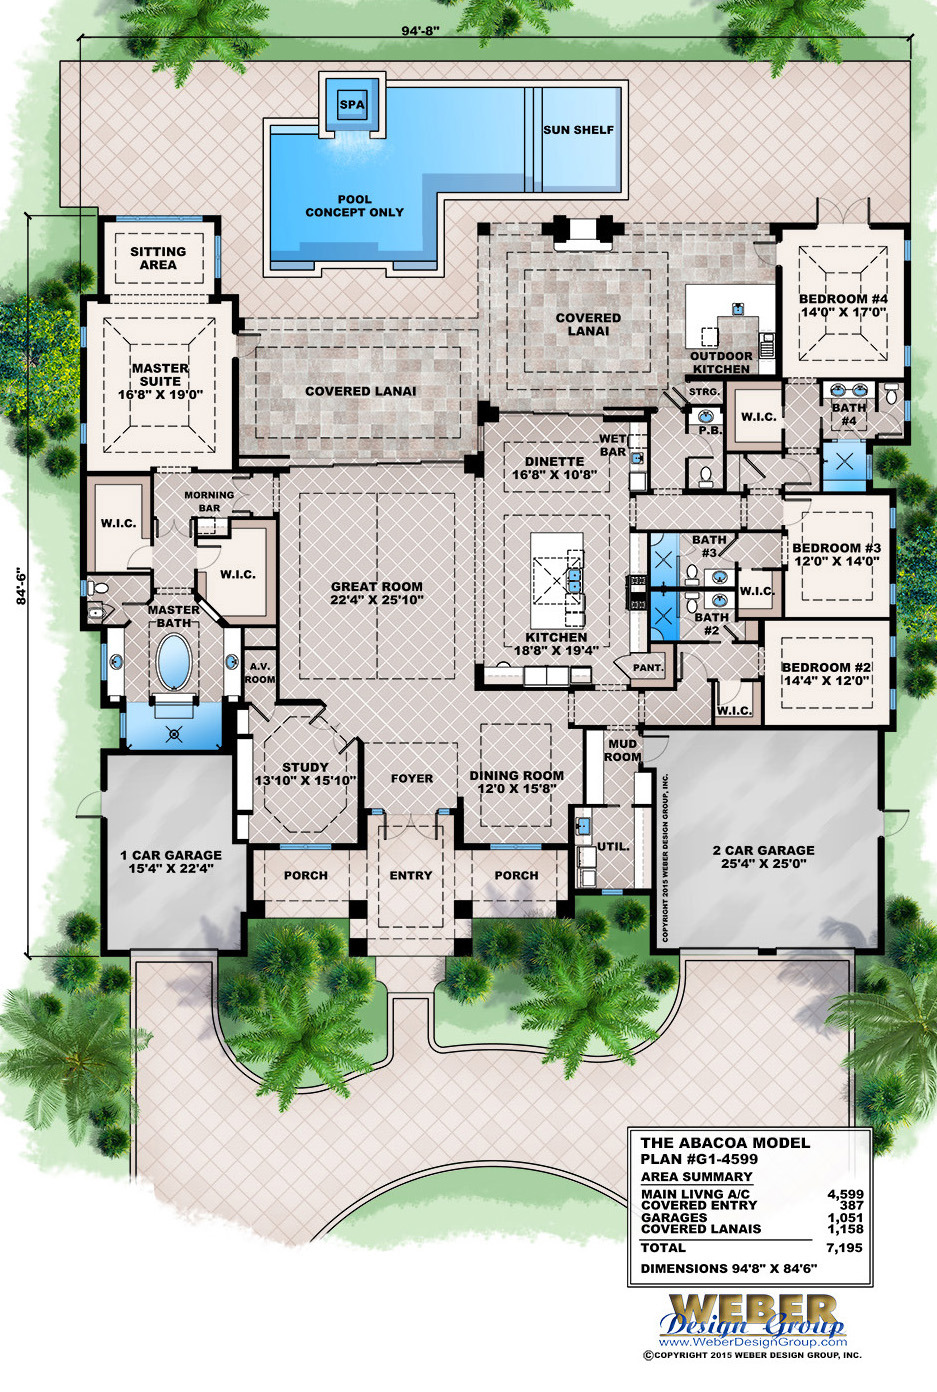 Post and Beam House Plans Floor Plans Beautiful Florida Room Mediterranean House Plans Contemporary Modern